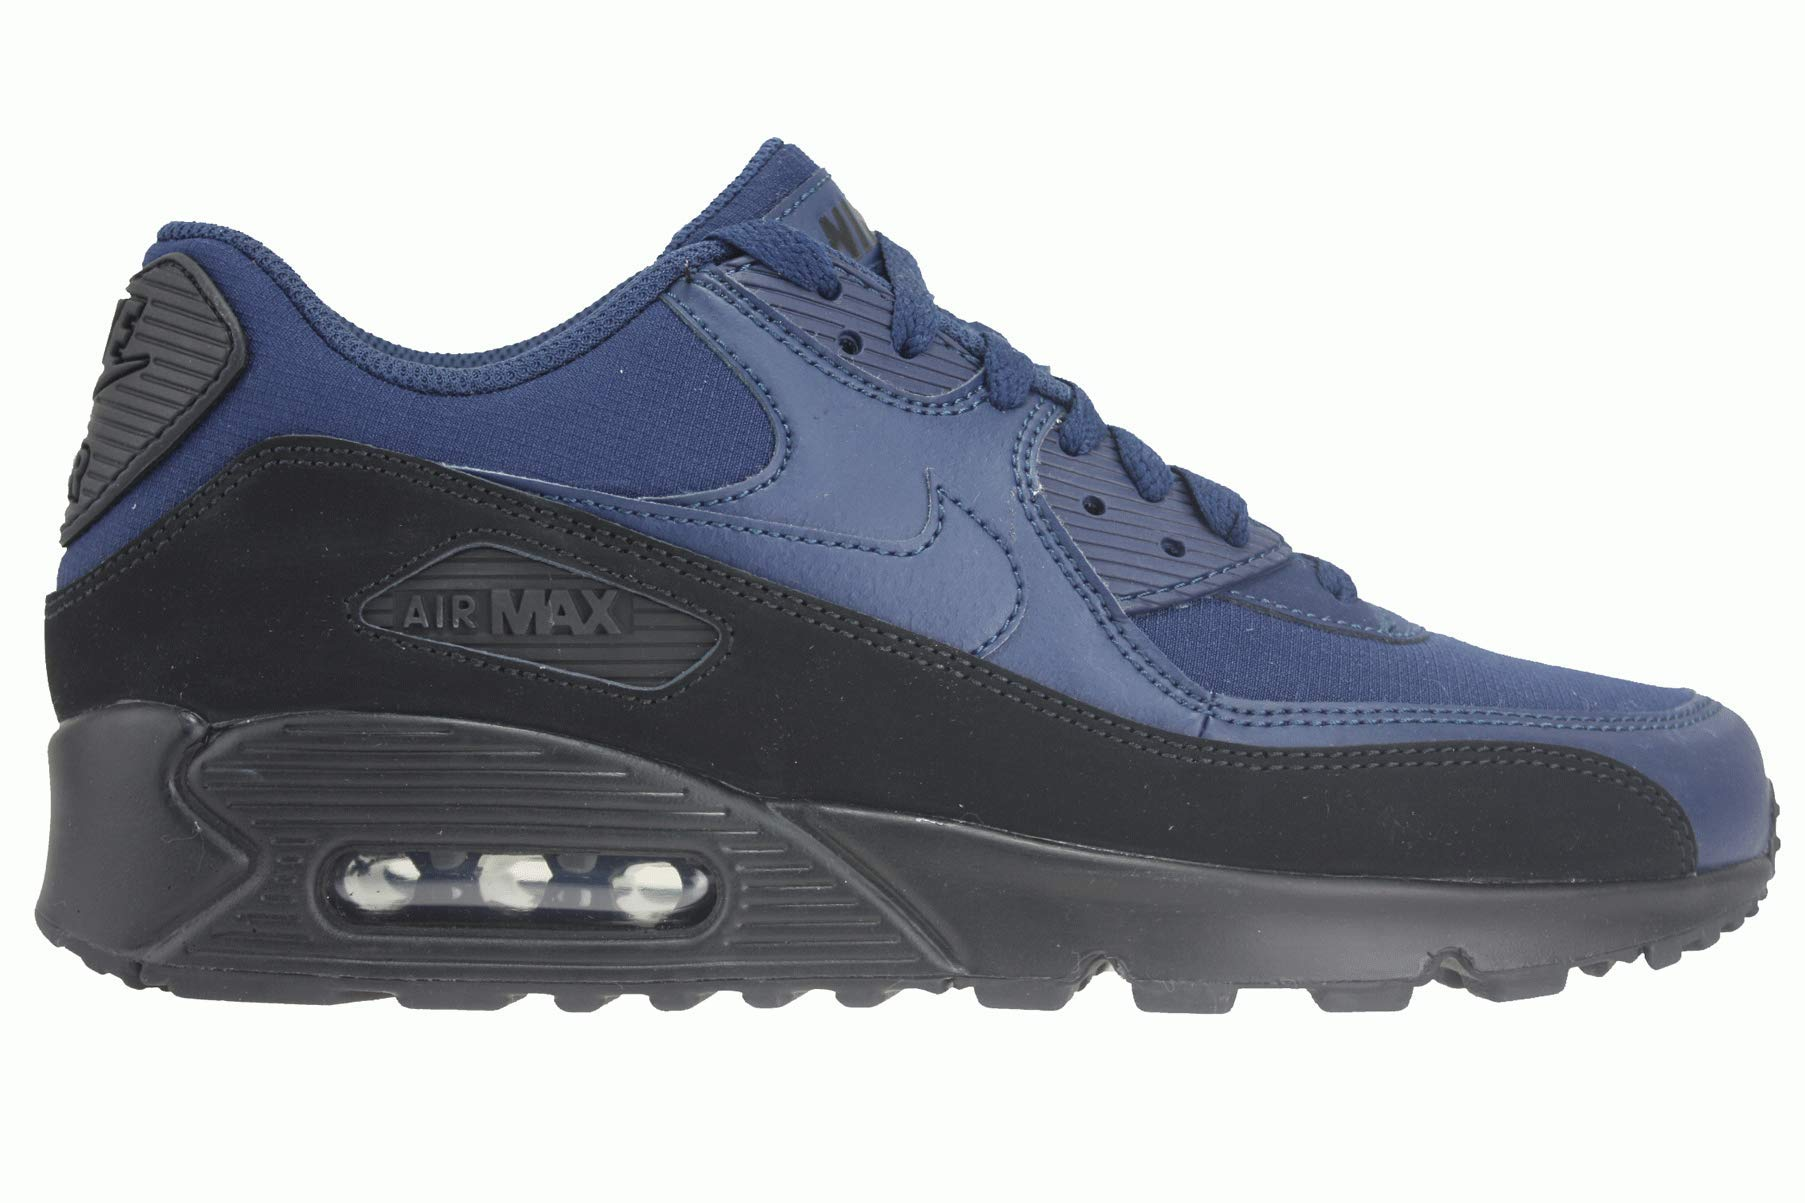 the best attitude f5a5c 4b610 Galleon - NIKE Mens Air Max 90 Essential Running Shoes Black Midnight Navy  AJ1285-007 Size 10.5